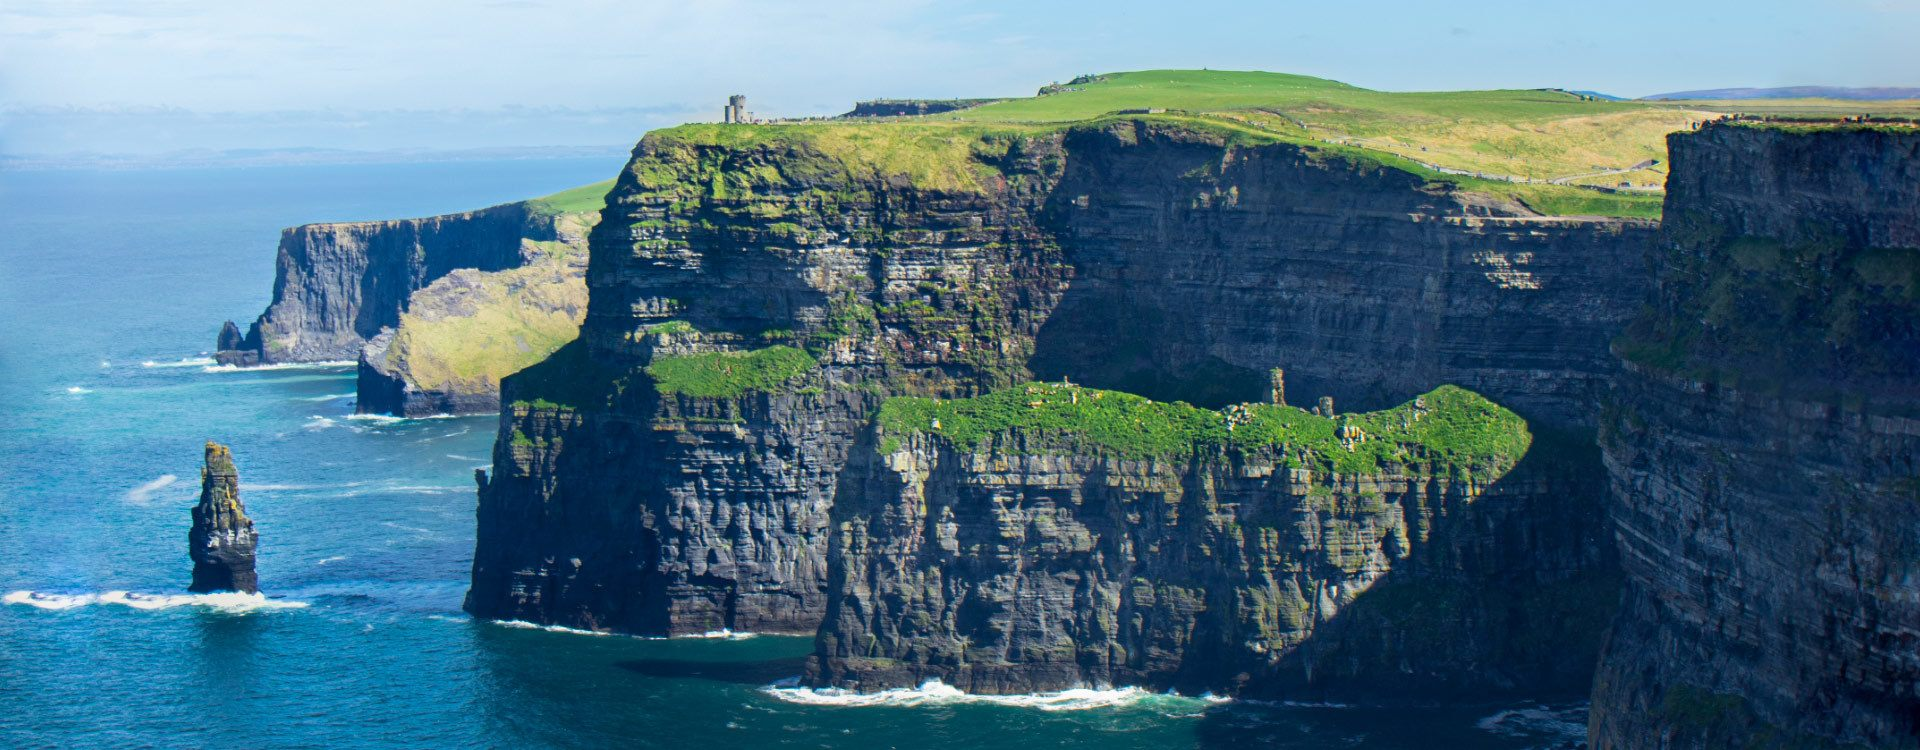 Cliffs of Moher Tagesfahrt ab Cork